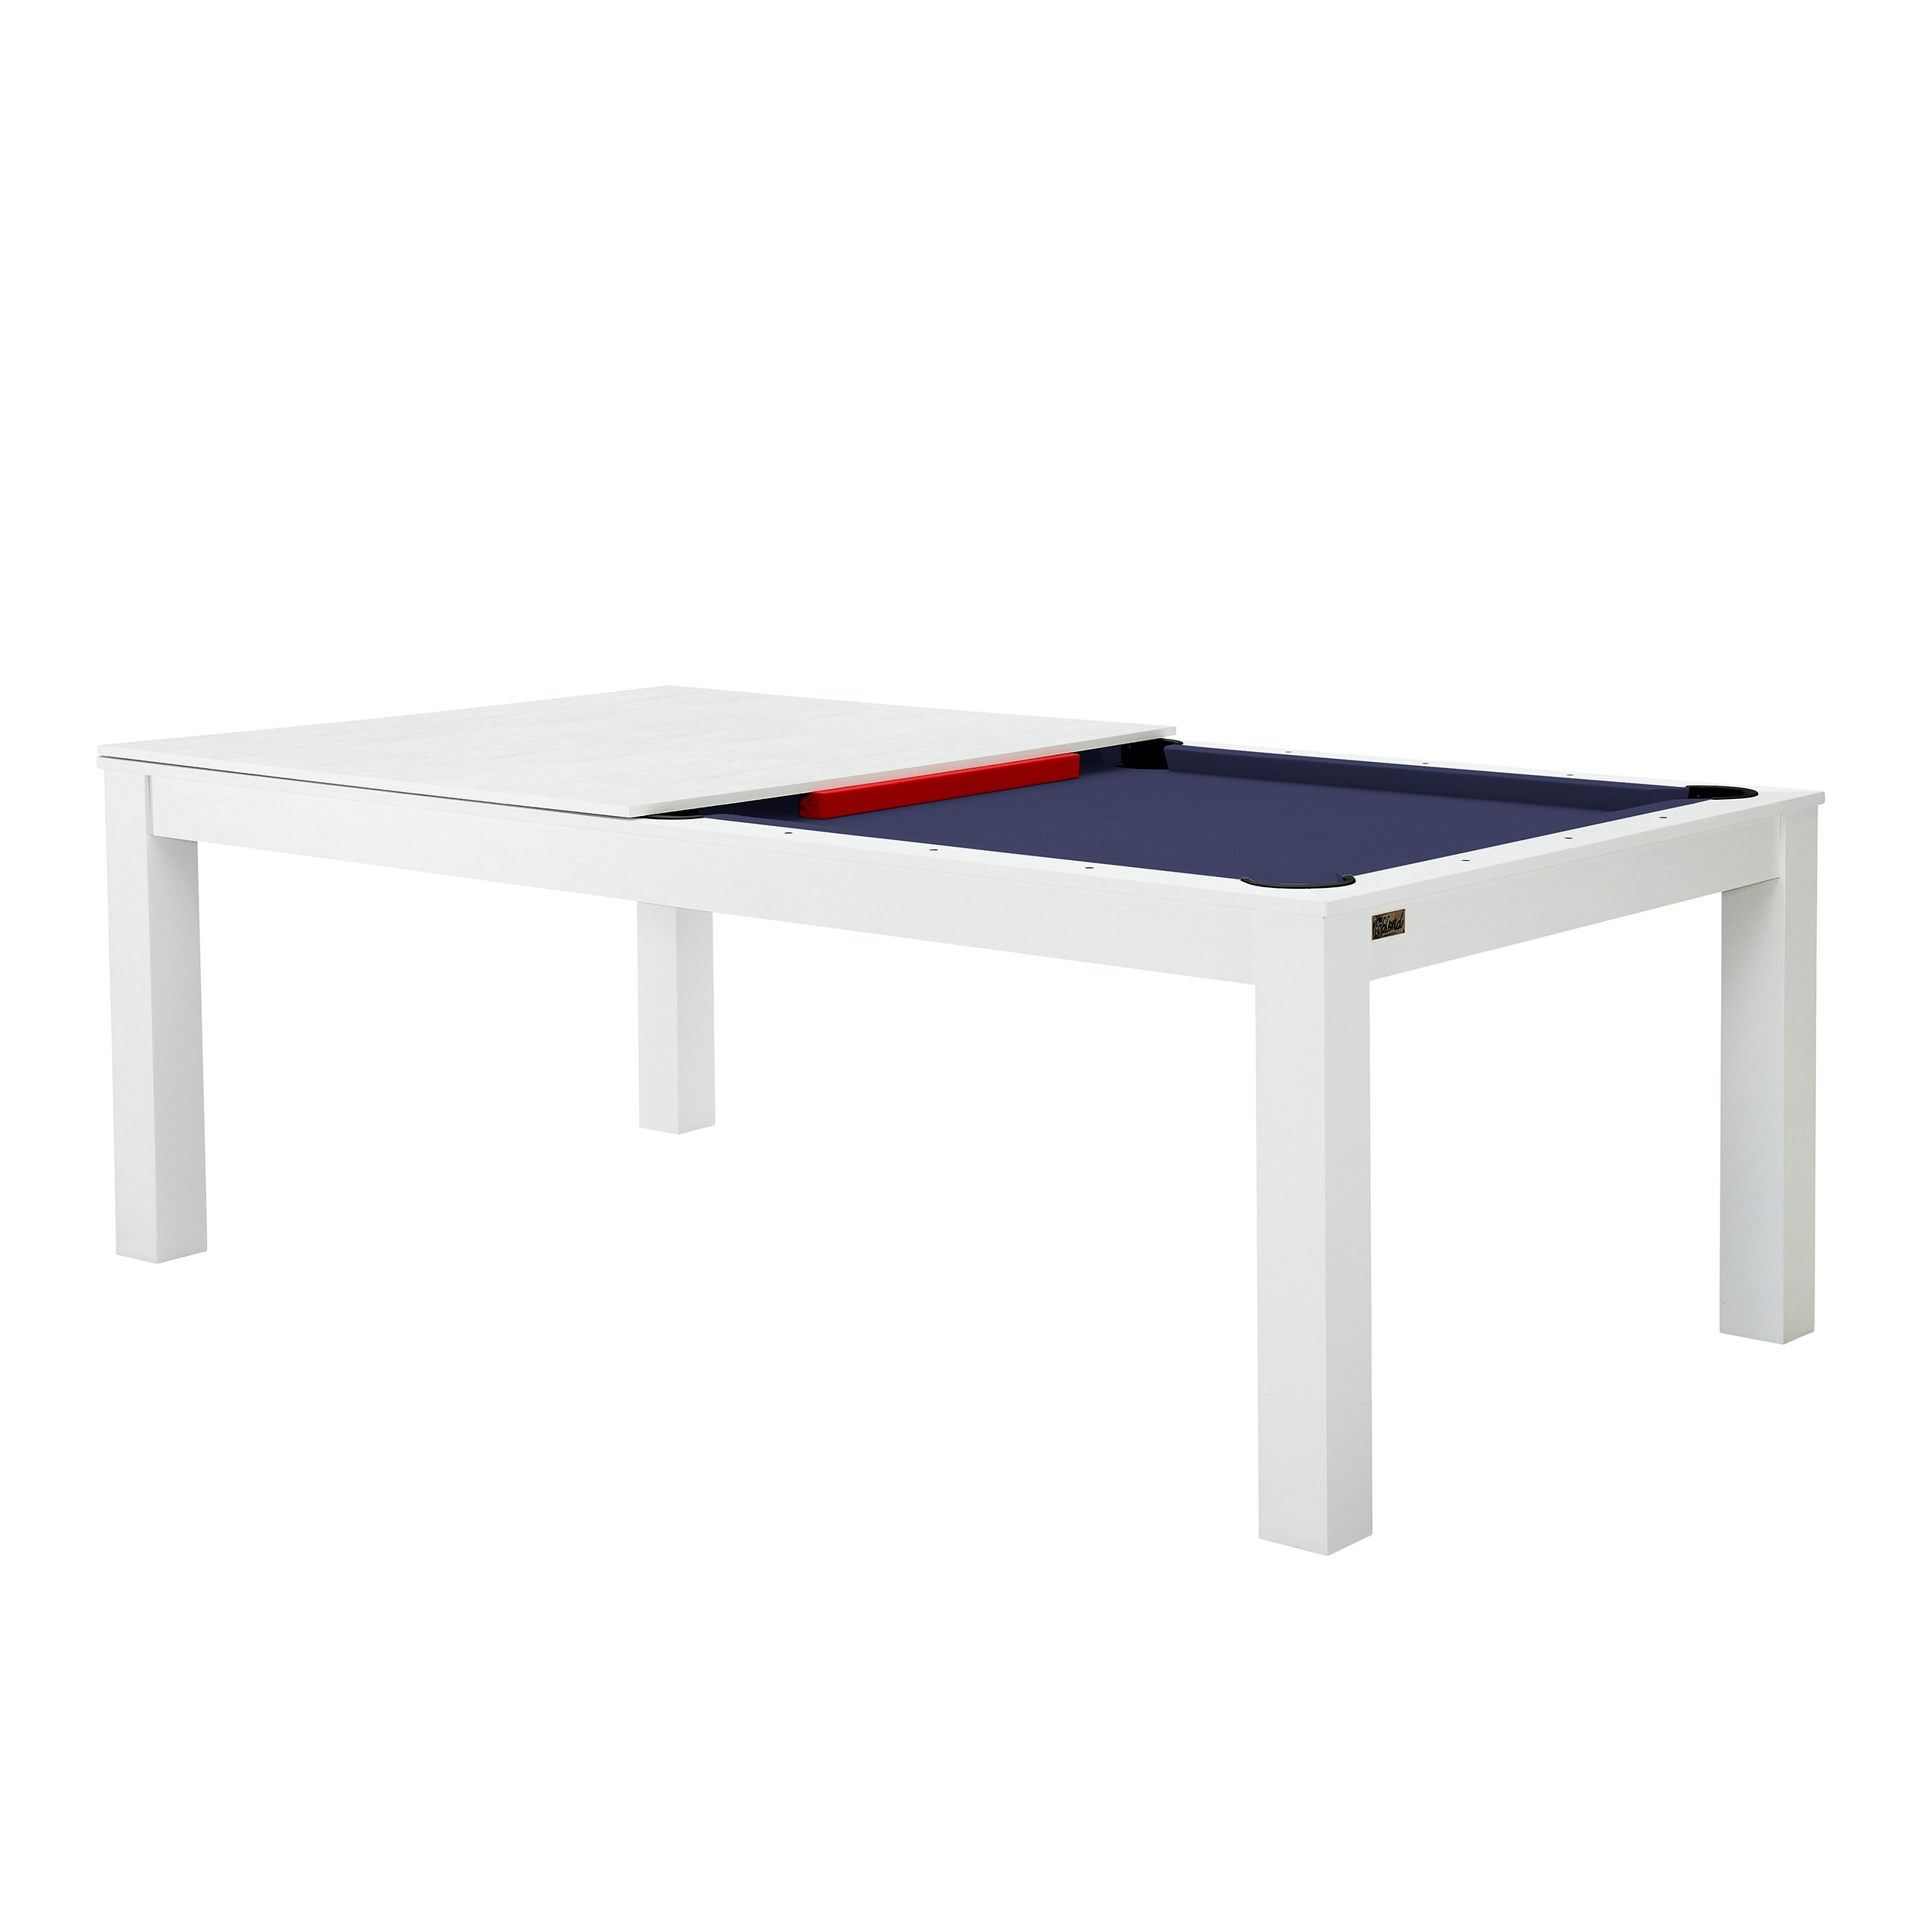 billard table convertible blanc tapis bleu testez nos billards tables convertibles blancs. Black Bedroom Furniture Sets. Home Design Ideas